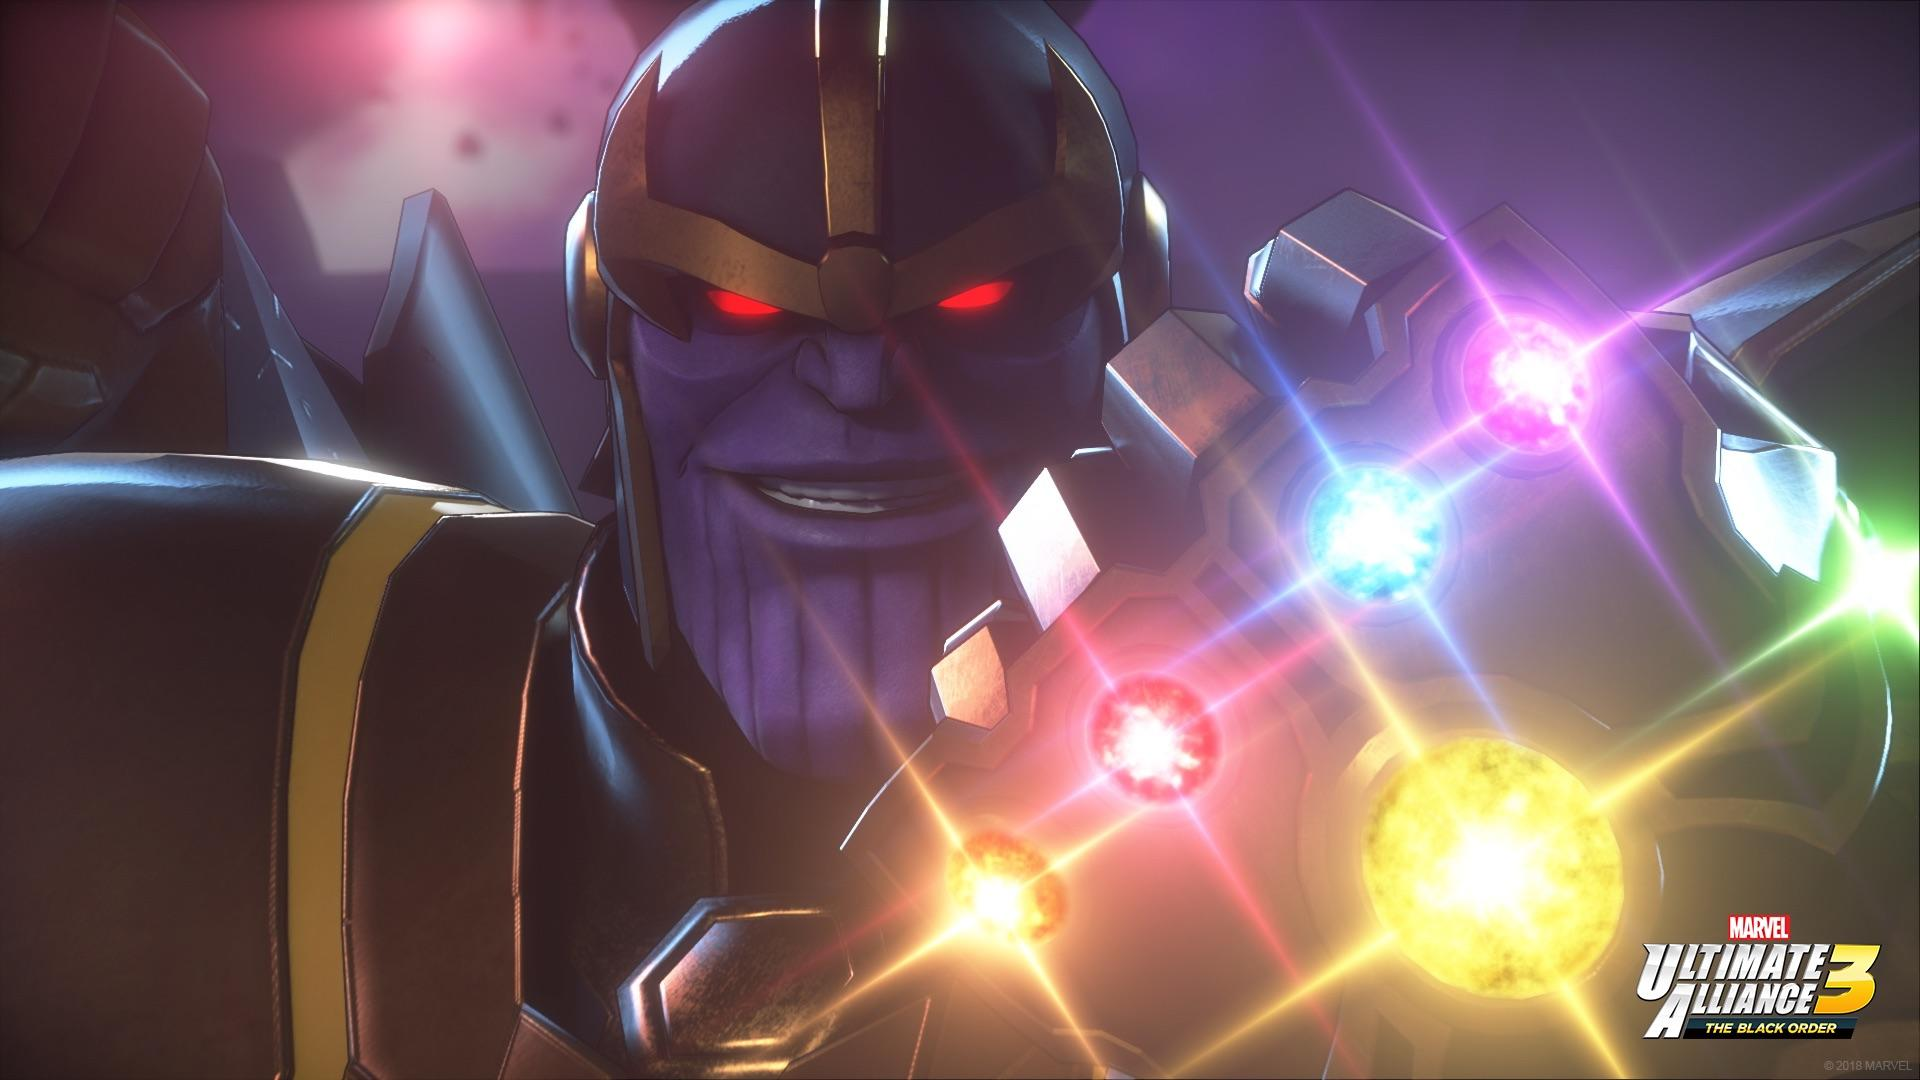 Marvel Ultimate Alliance 3 - Thanos